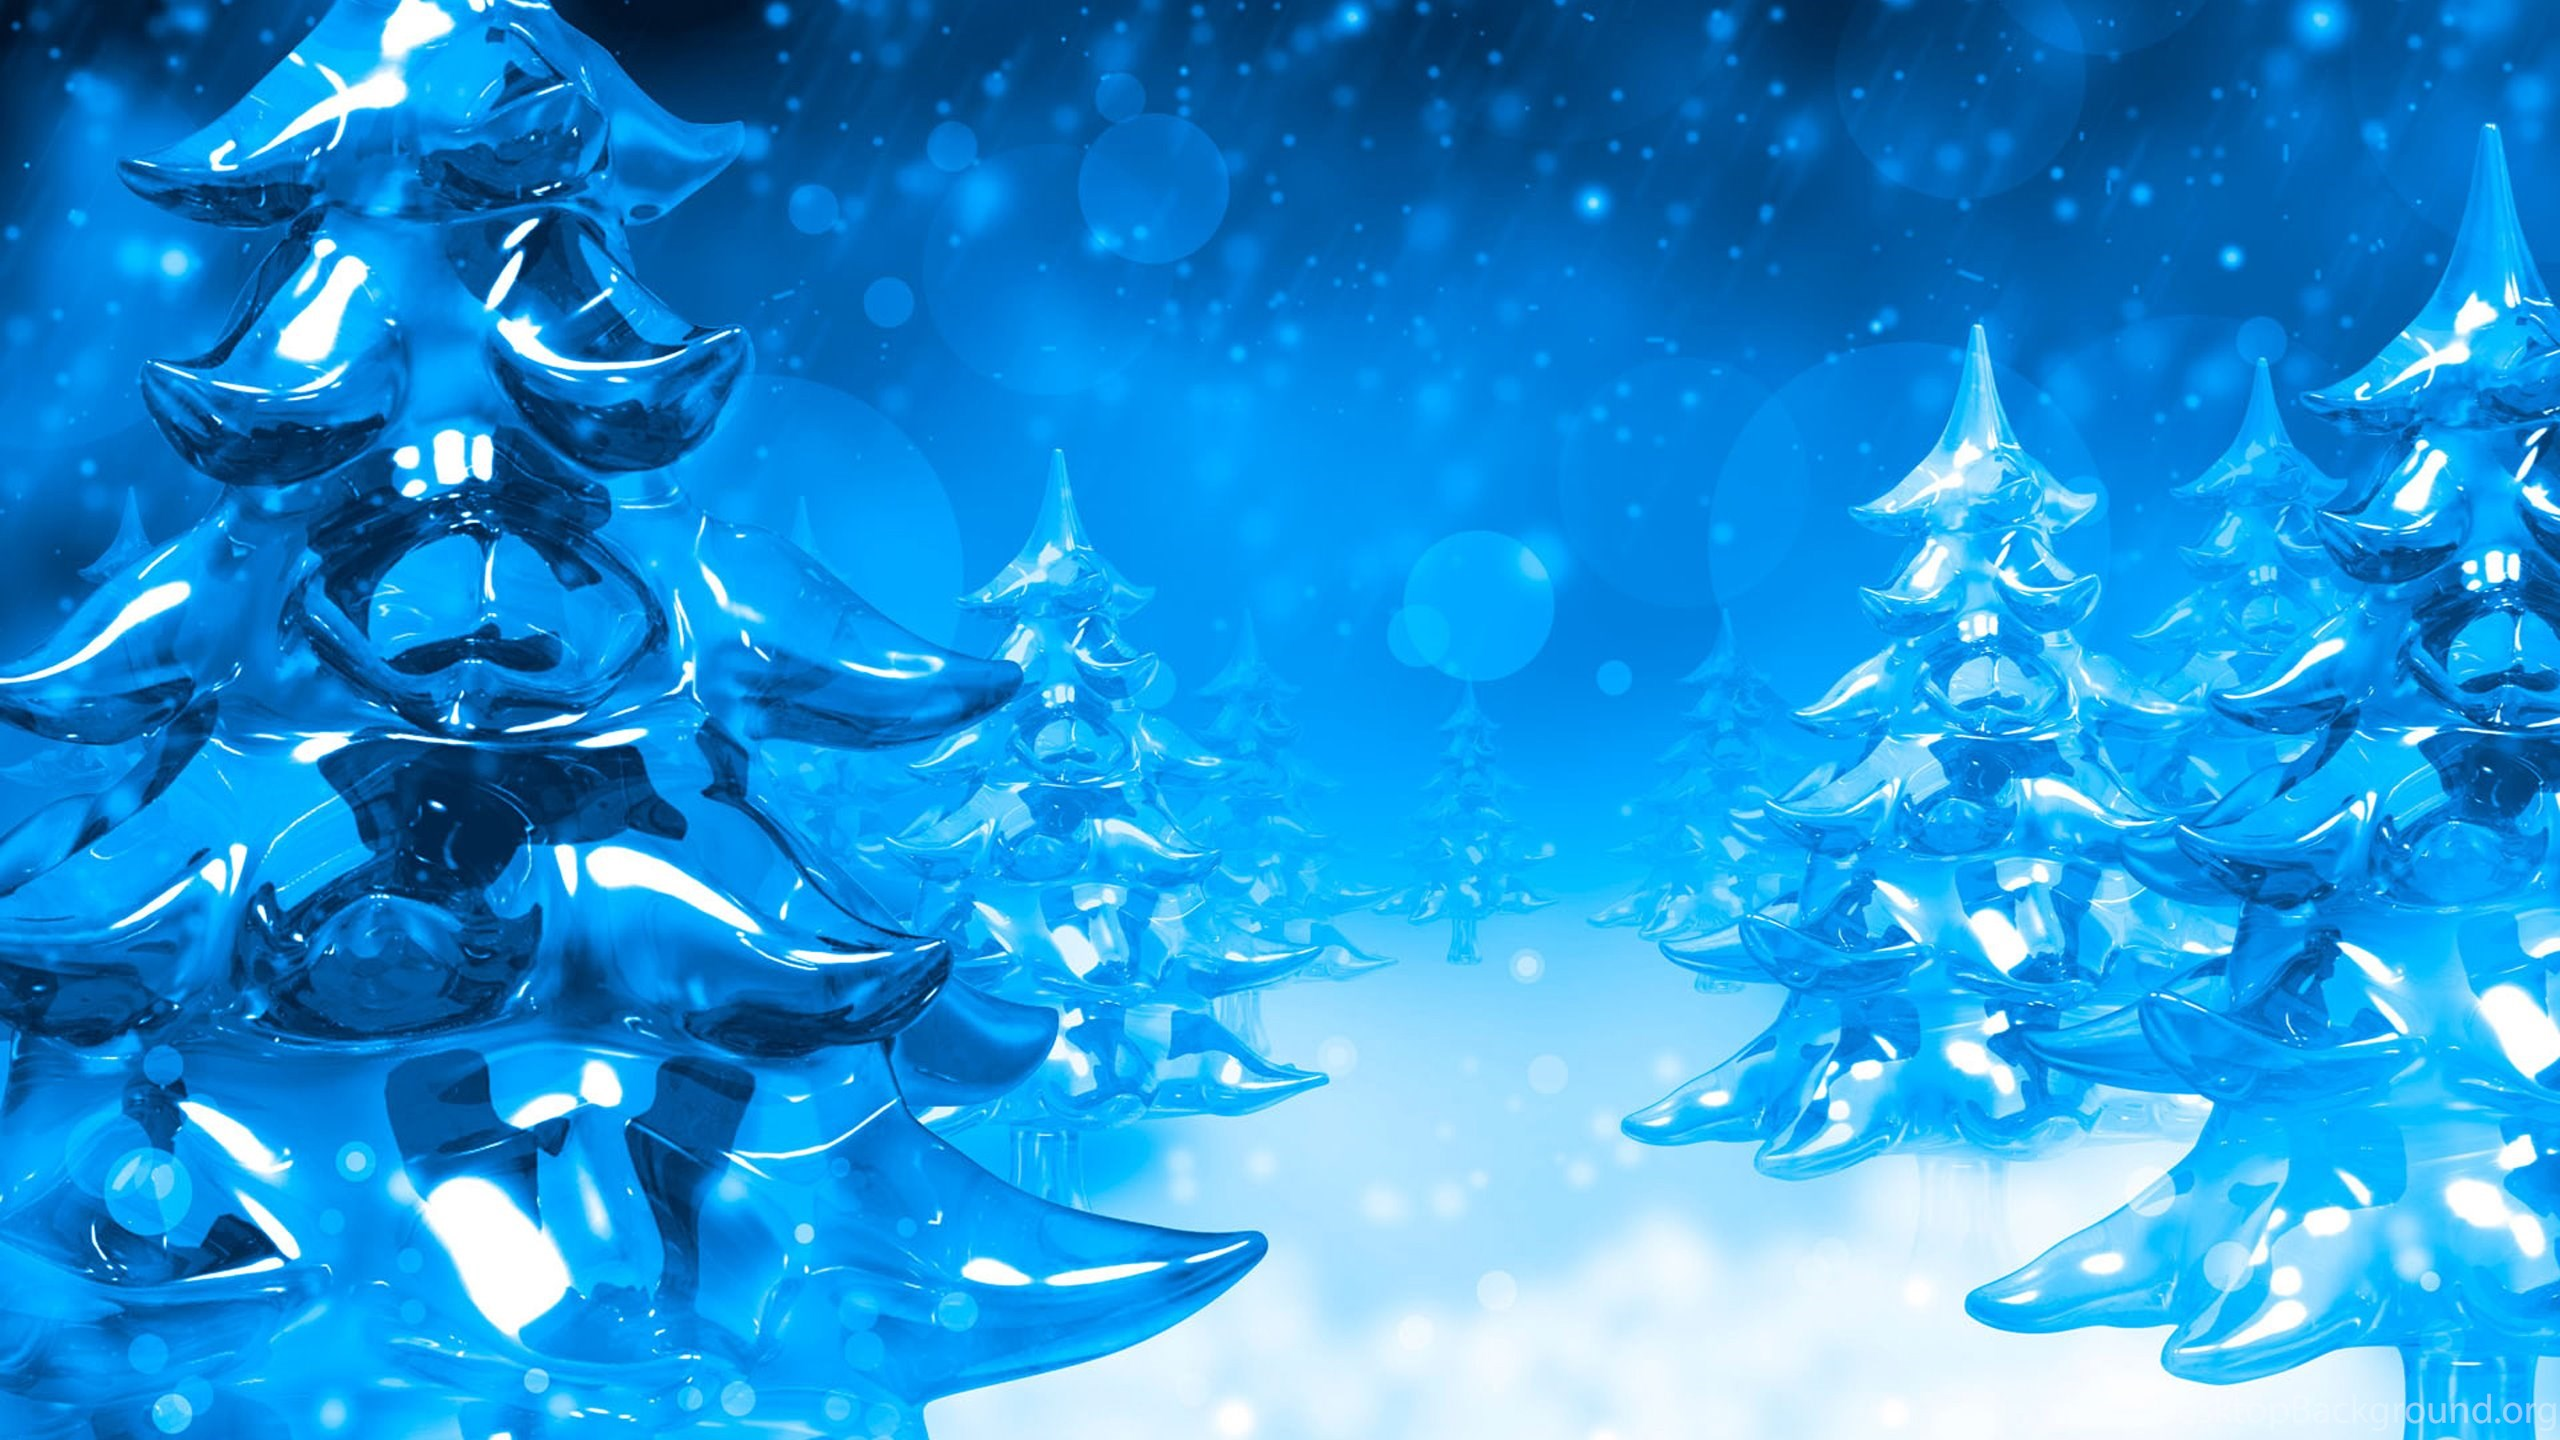 Christmas Backgrounds High Resolution Wallpapers Zone Desktop Background